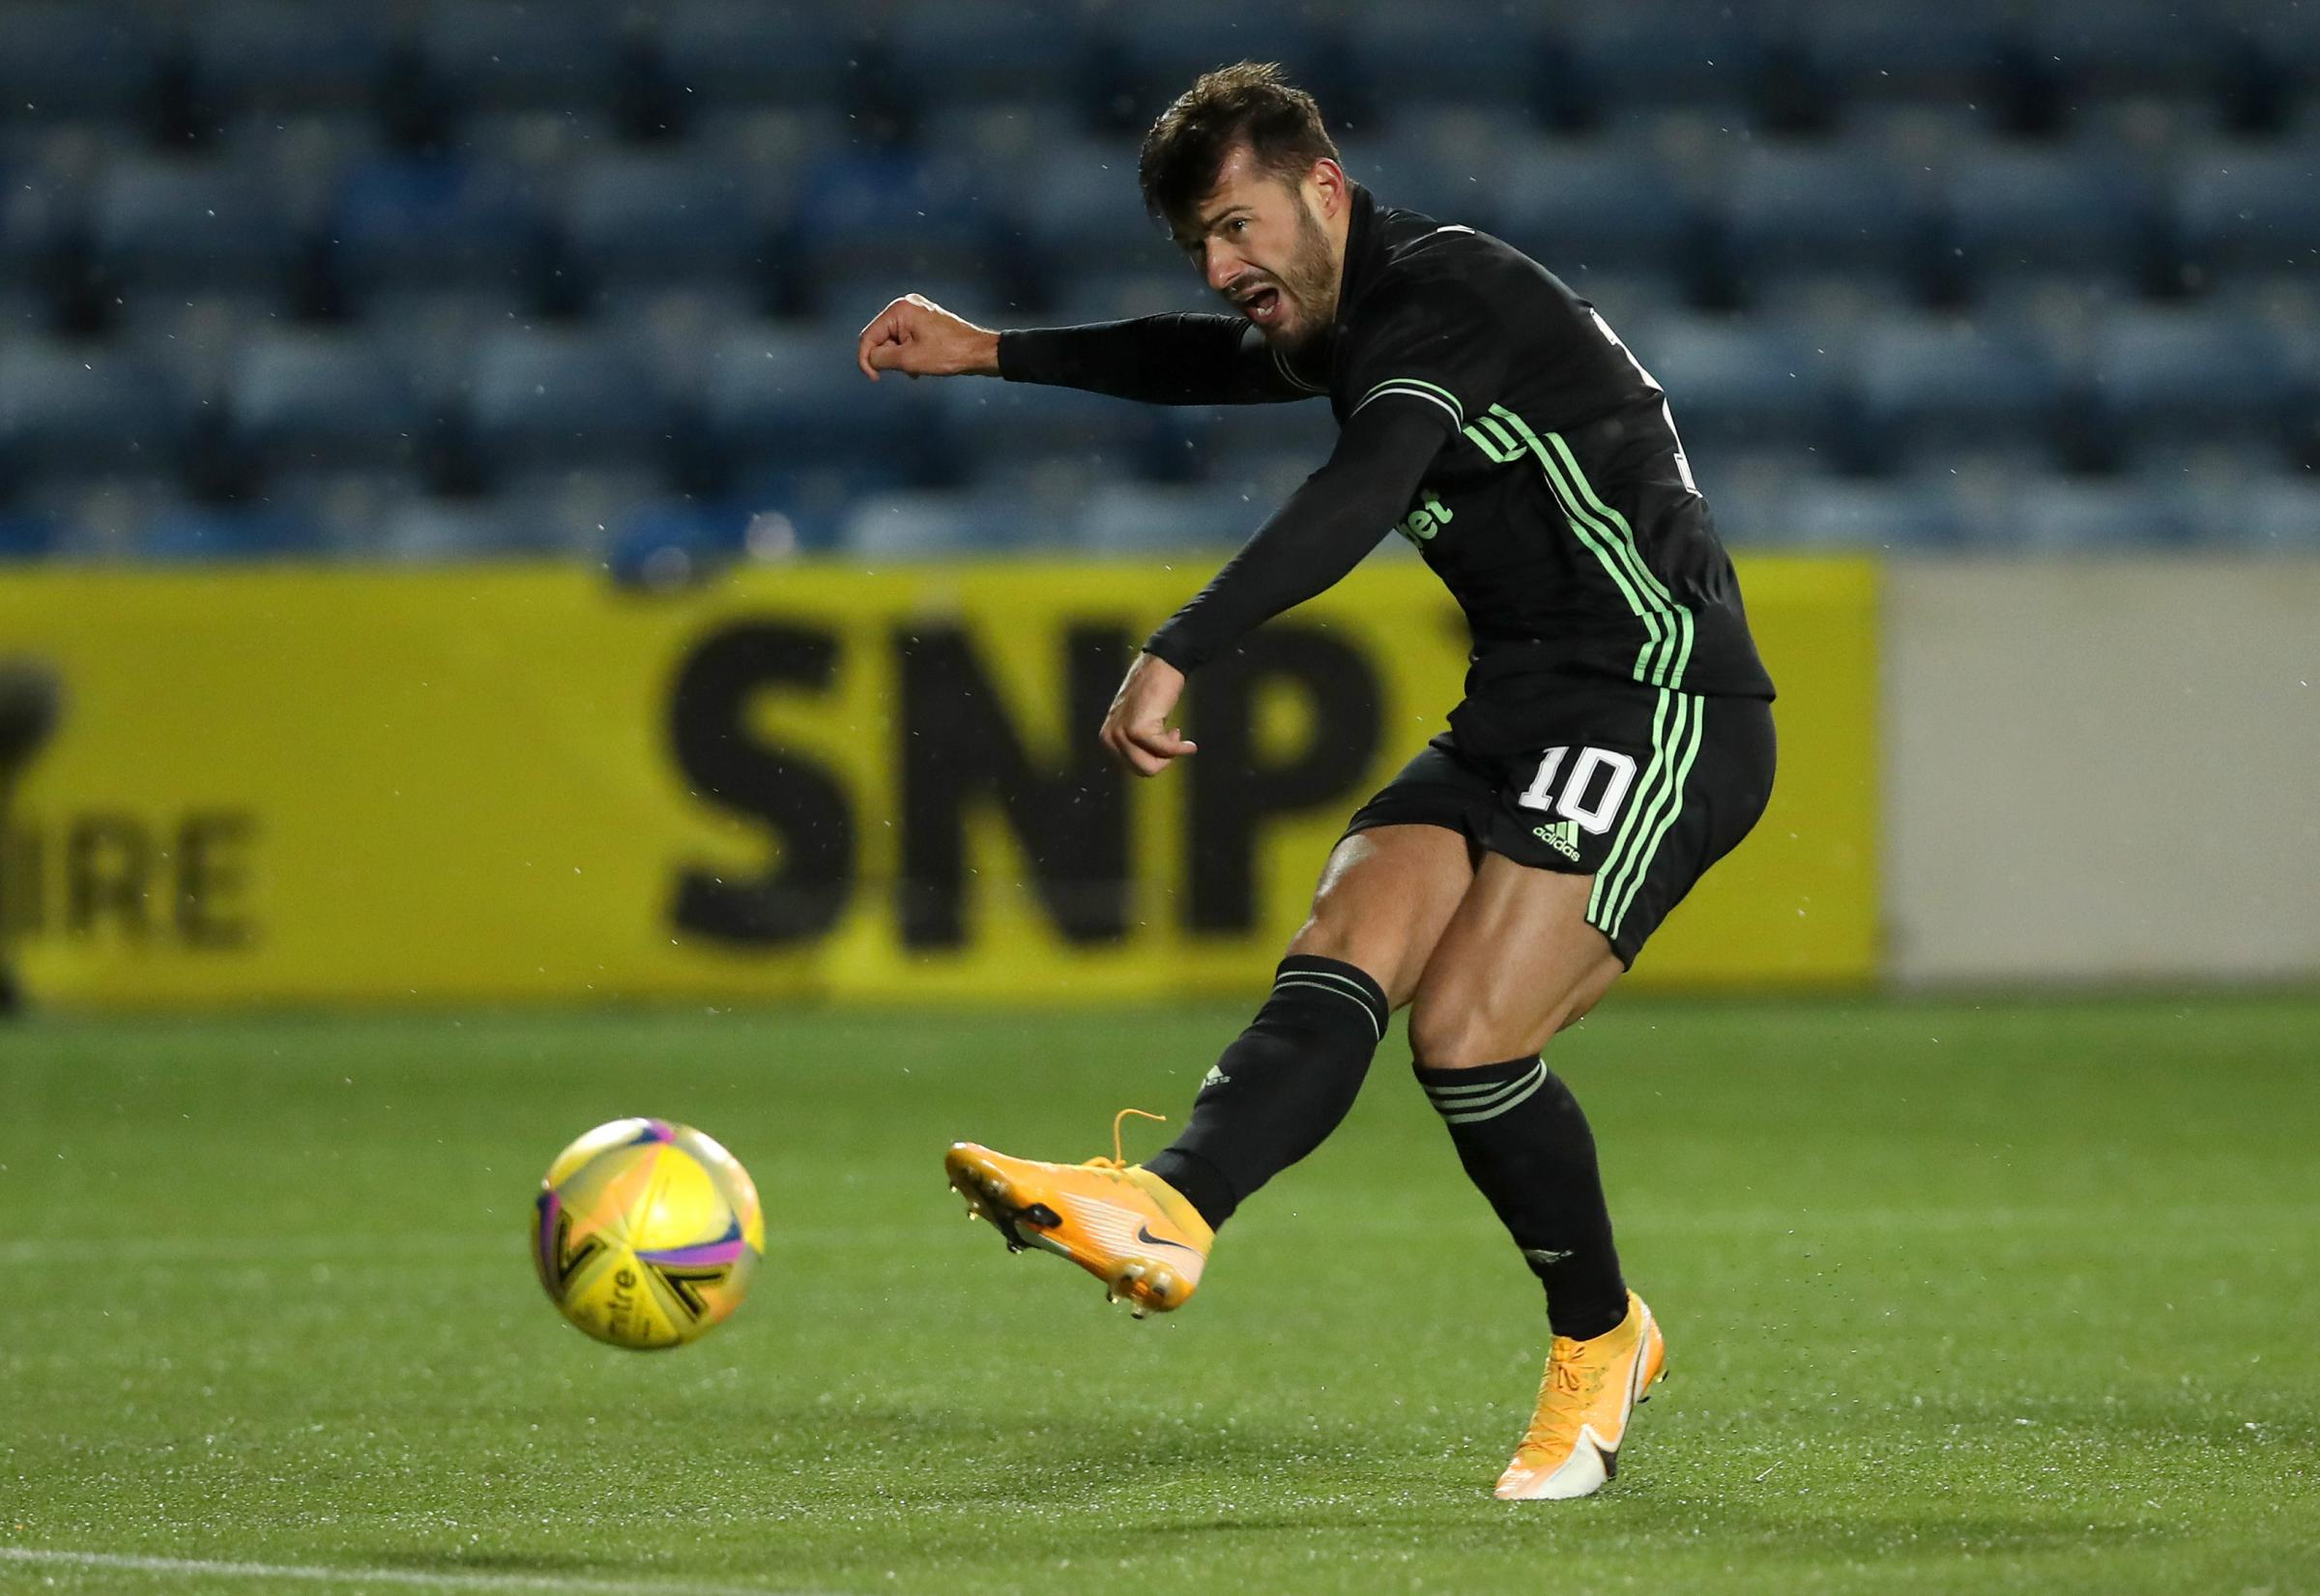 Celtic striker Albian Ajeti escapes ban as simulation charge 'not proven'